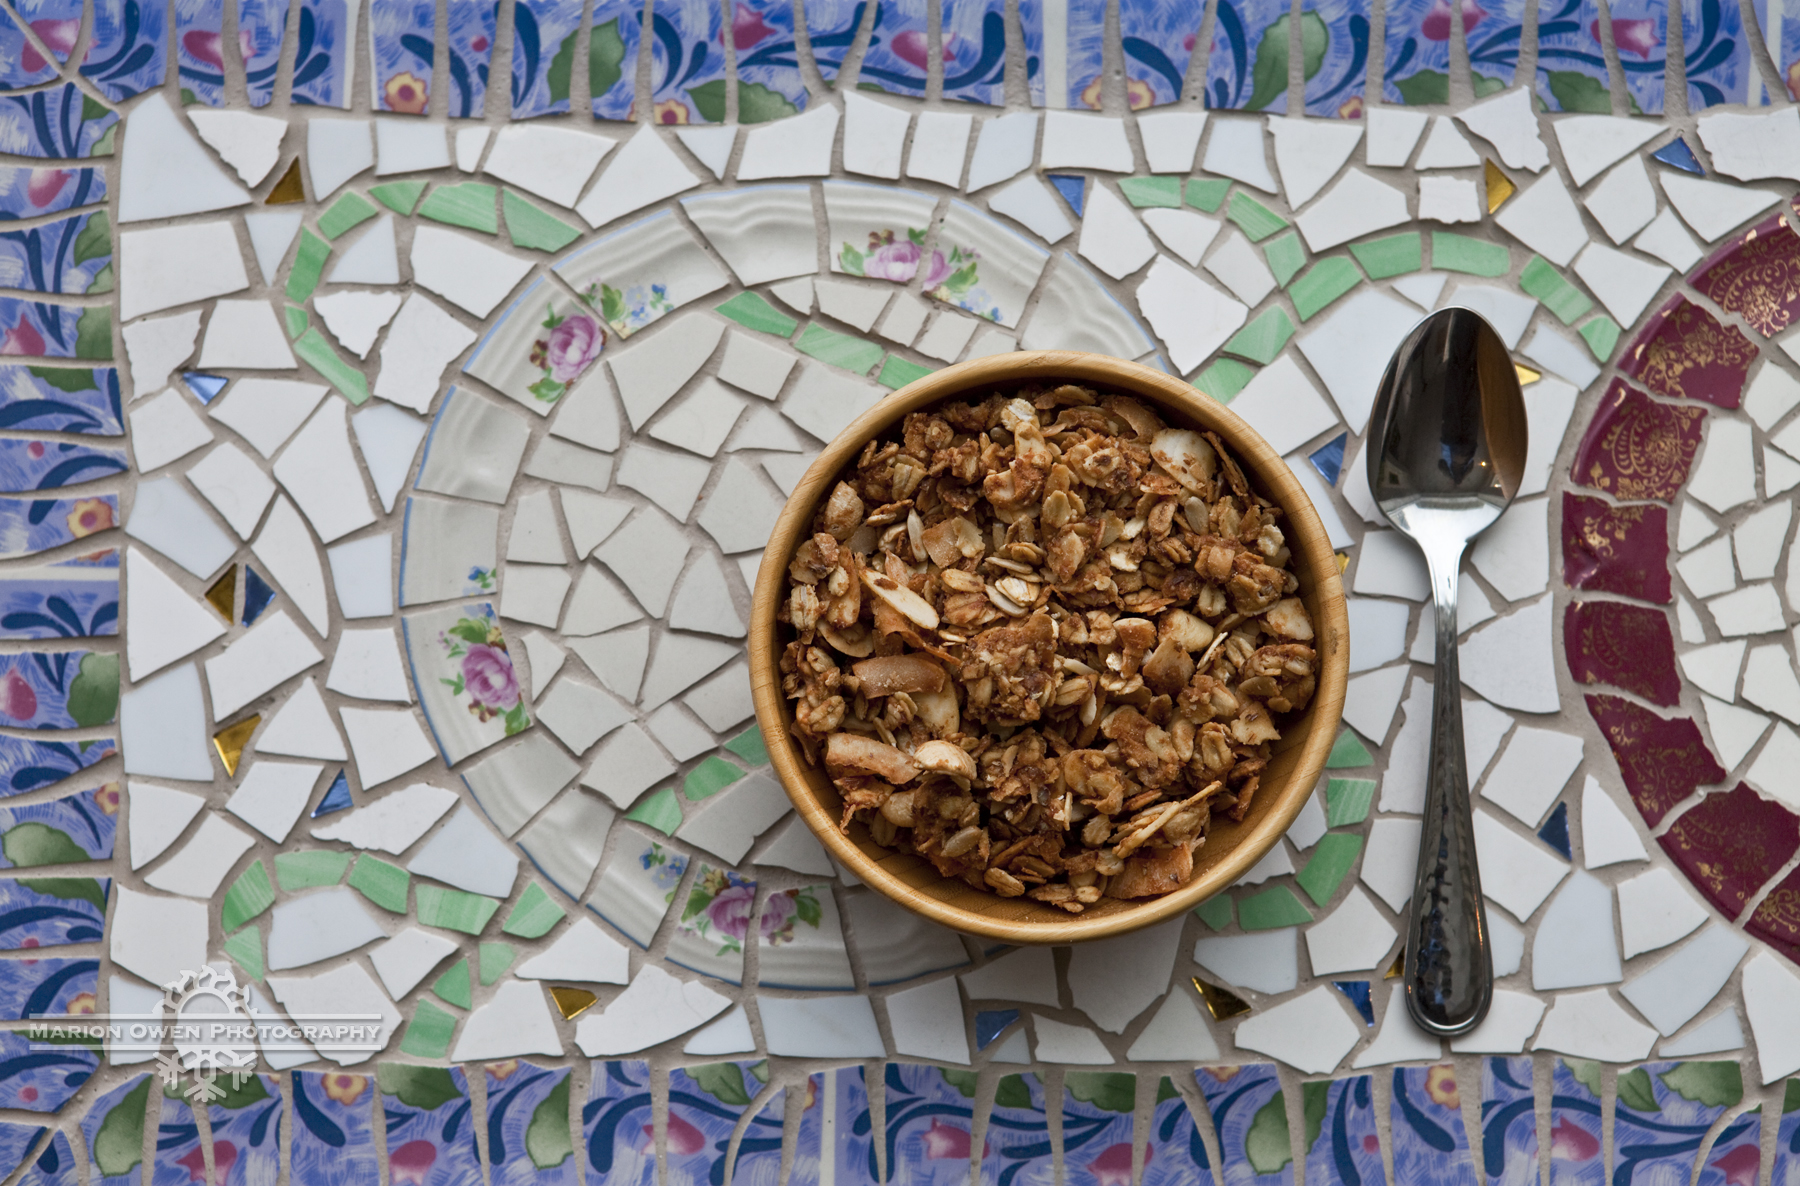 Granola, breakfast, food, healthy, fiber, nuts, mosaic, spoon, meal, morning, Kodiak, Alaska, oats, homemade, coconut, peanut butter, honey, oatmeal, cashews.